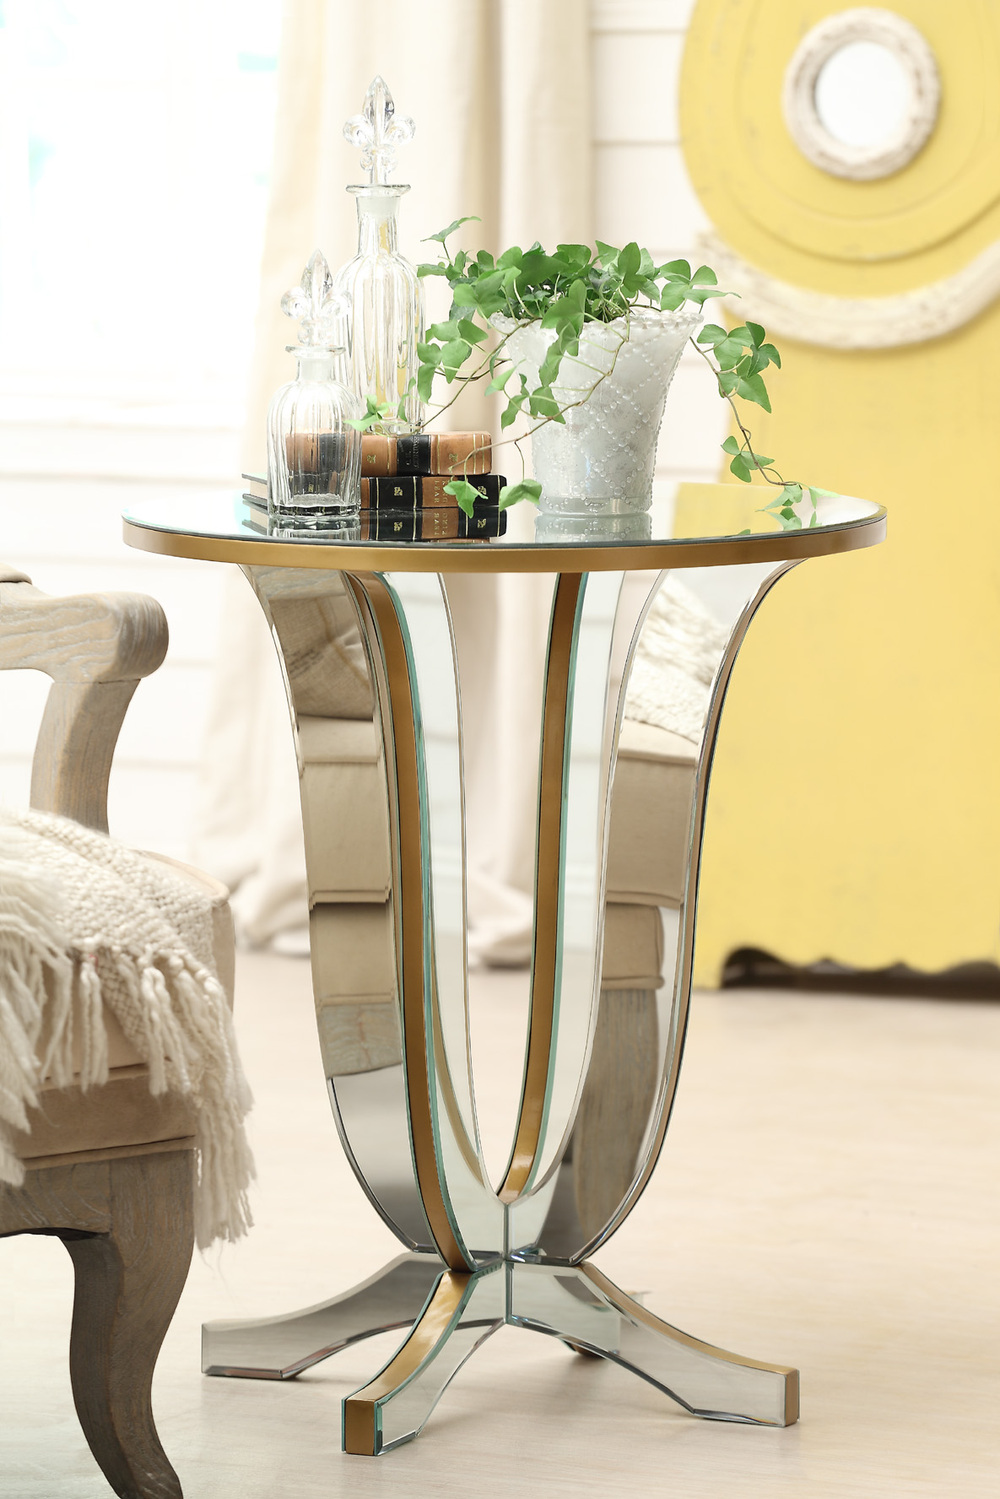 astonishing small accent tables for living room table gold furniture modern kijiji white glass antique decorative target round outdoor full size double vanity hampton bay chaise